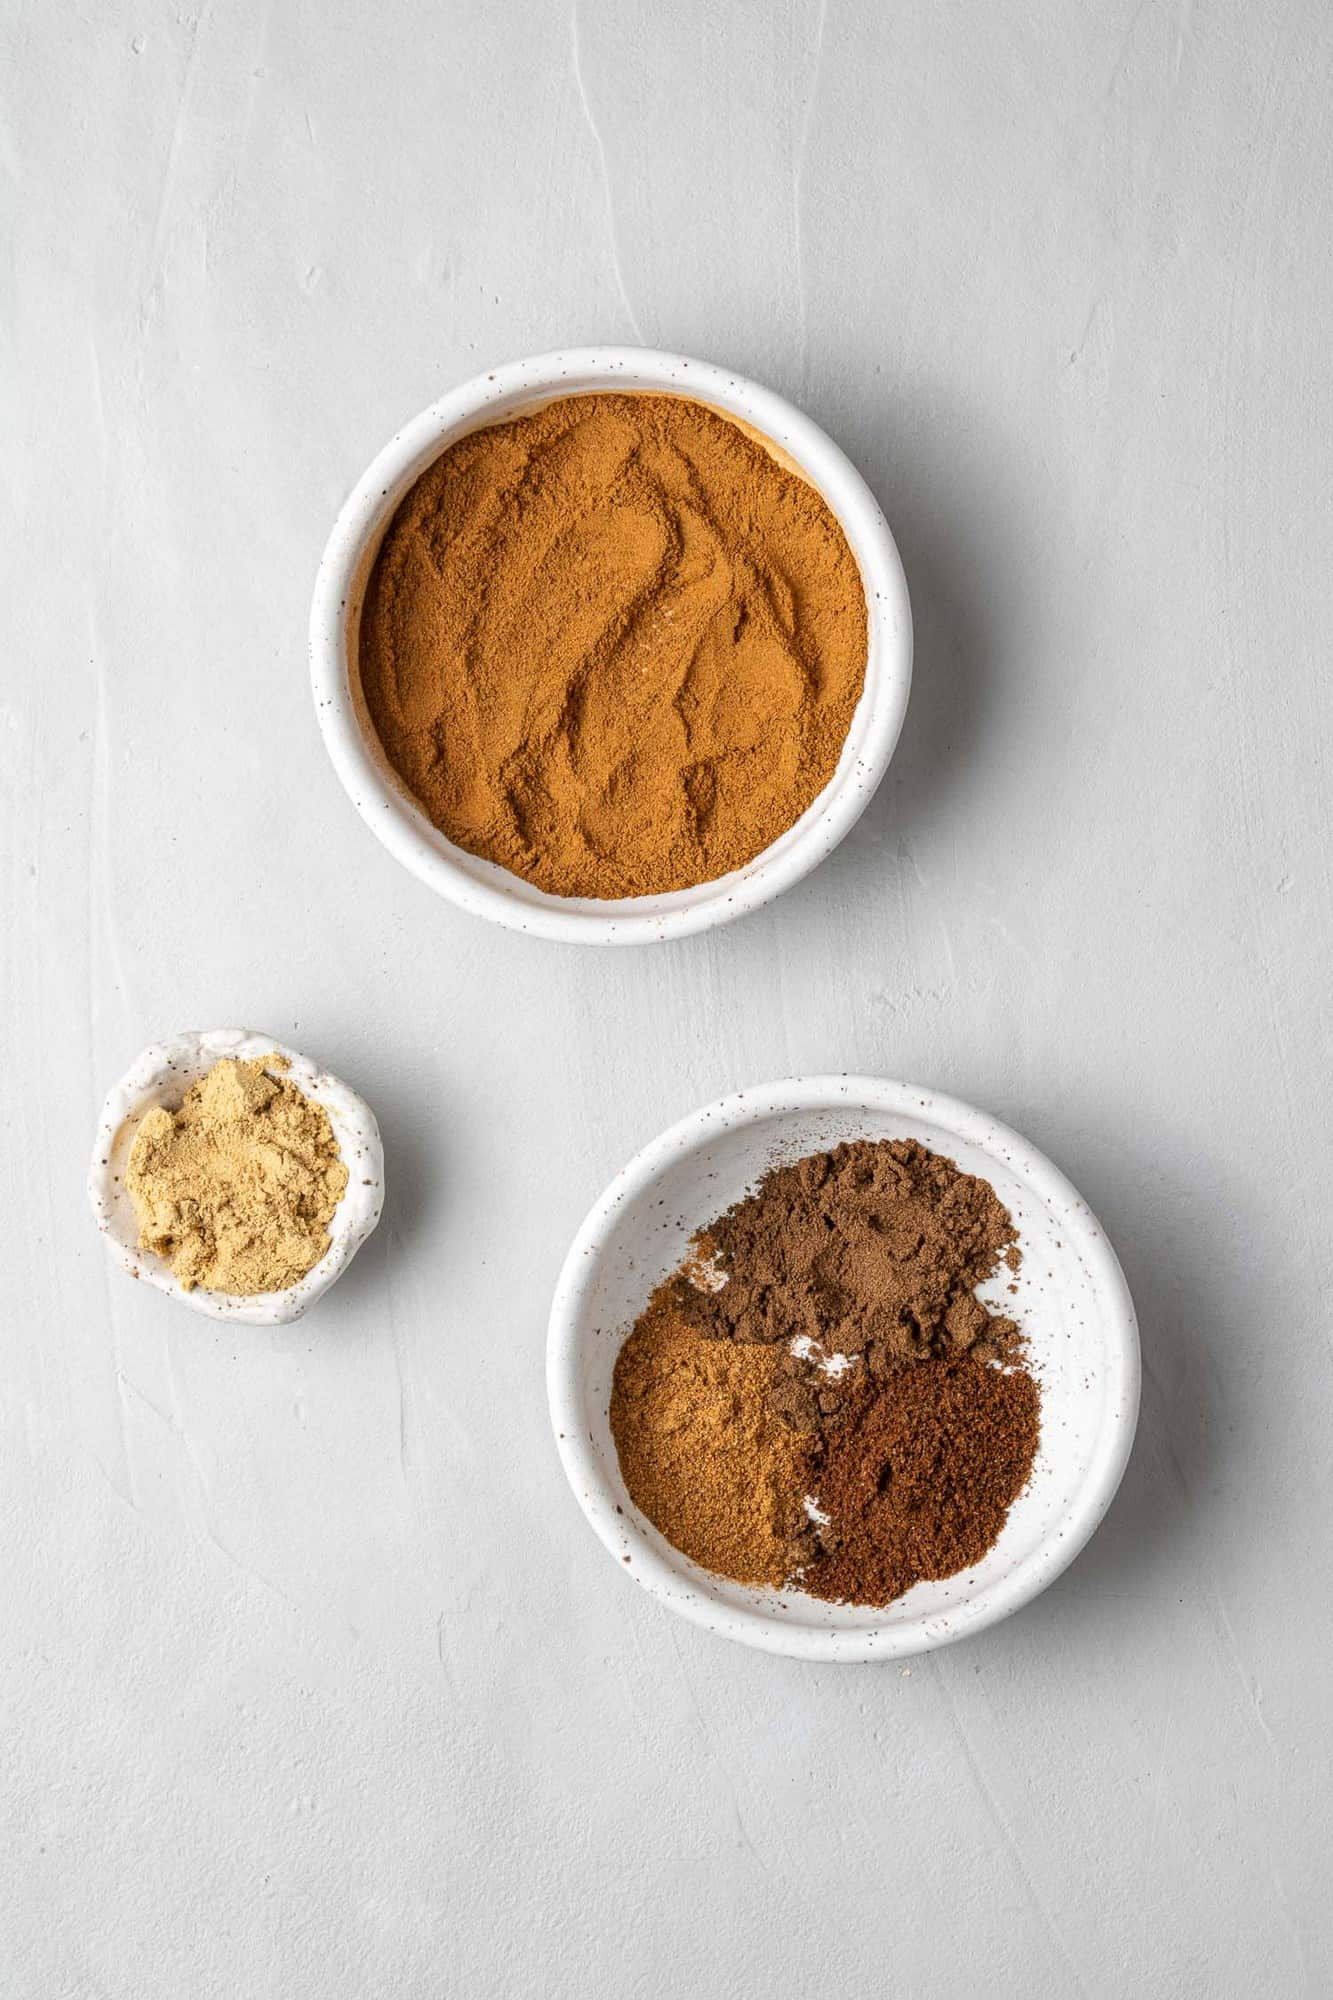 Spices in separate bowls on a light grey background.